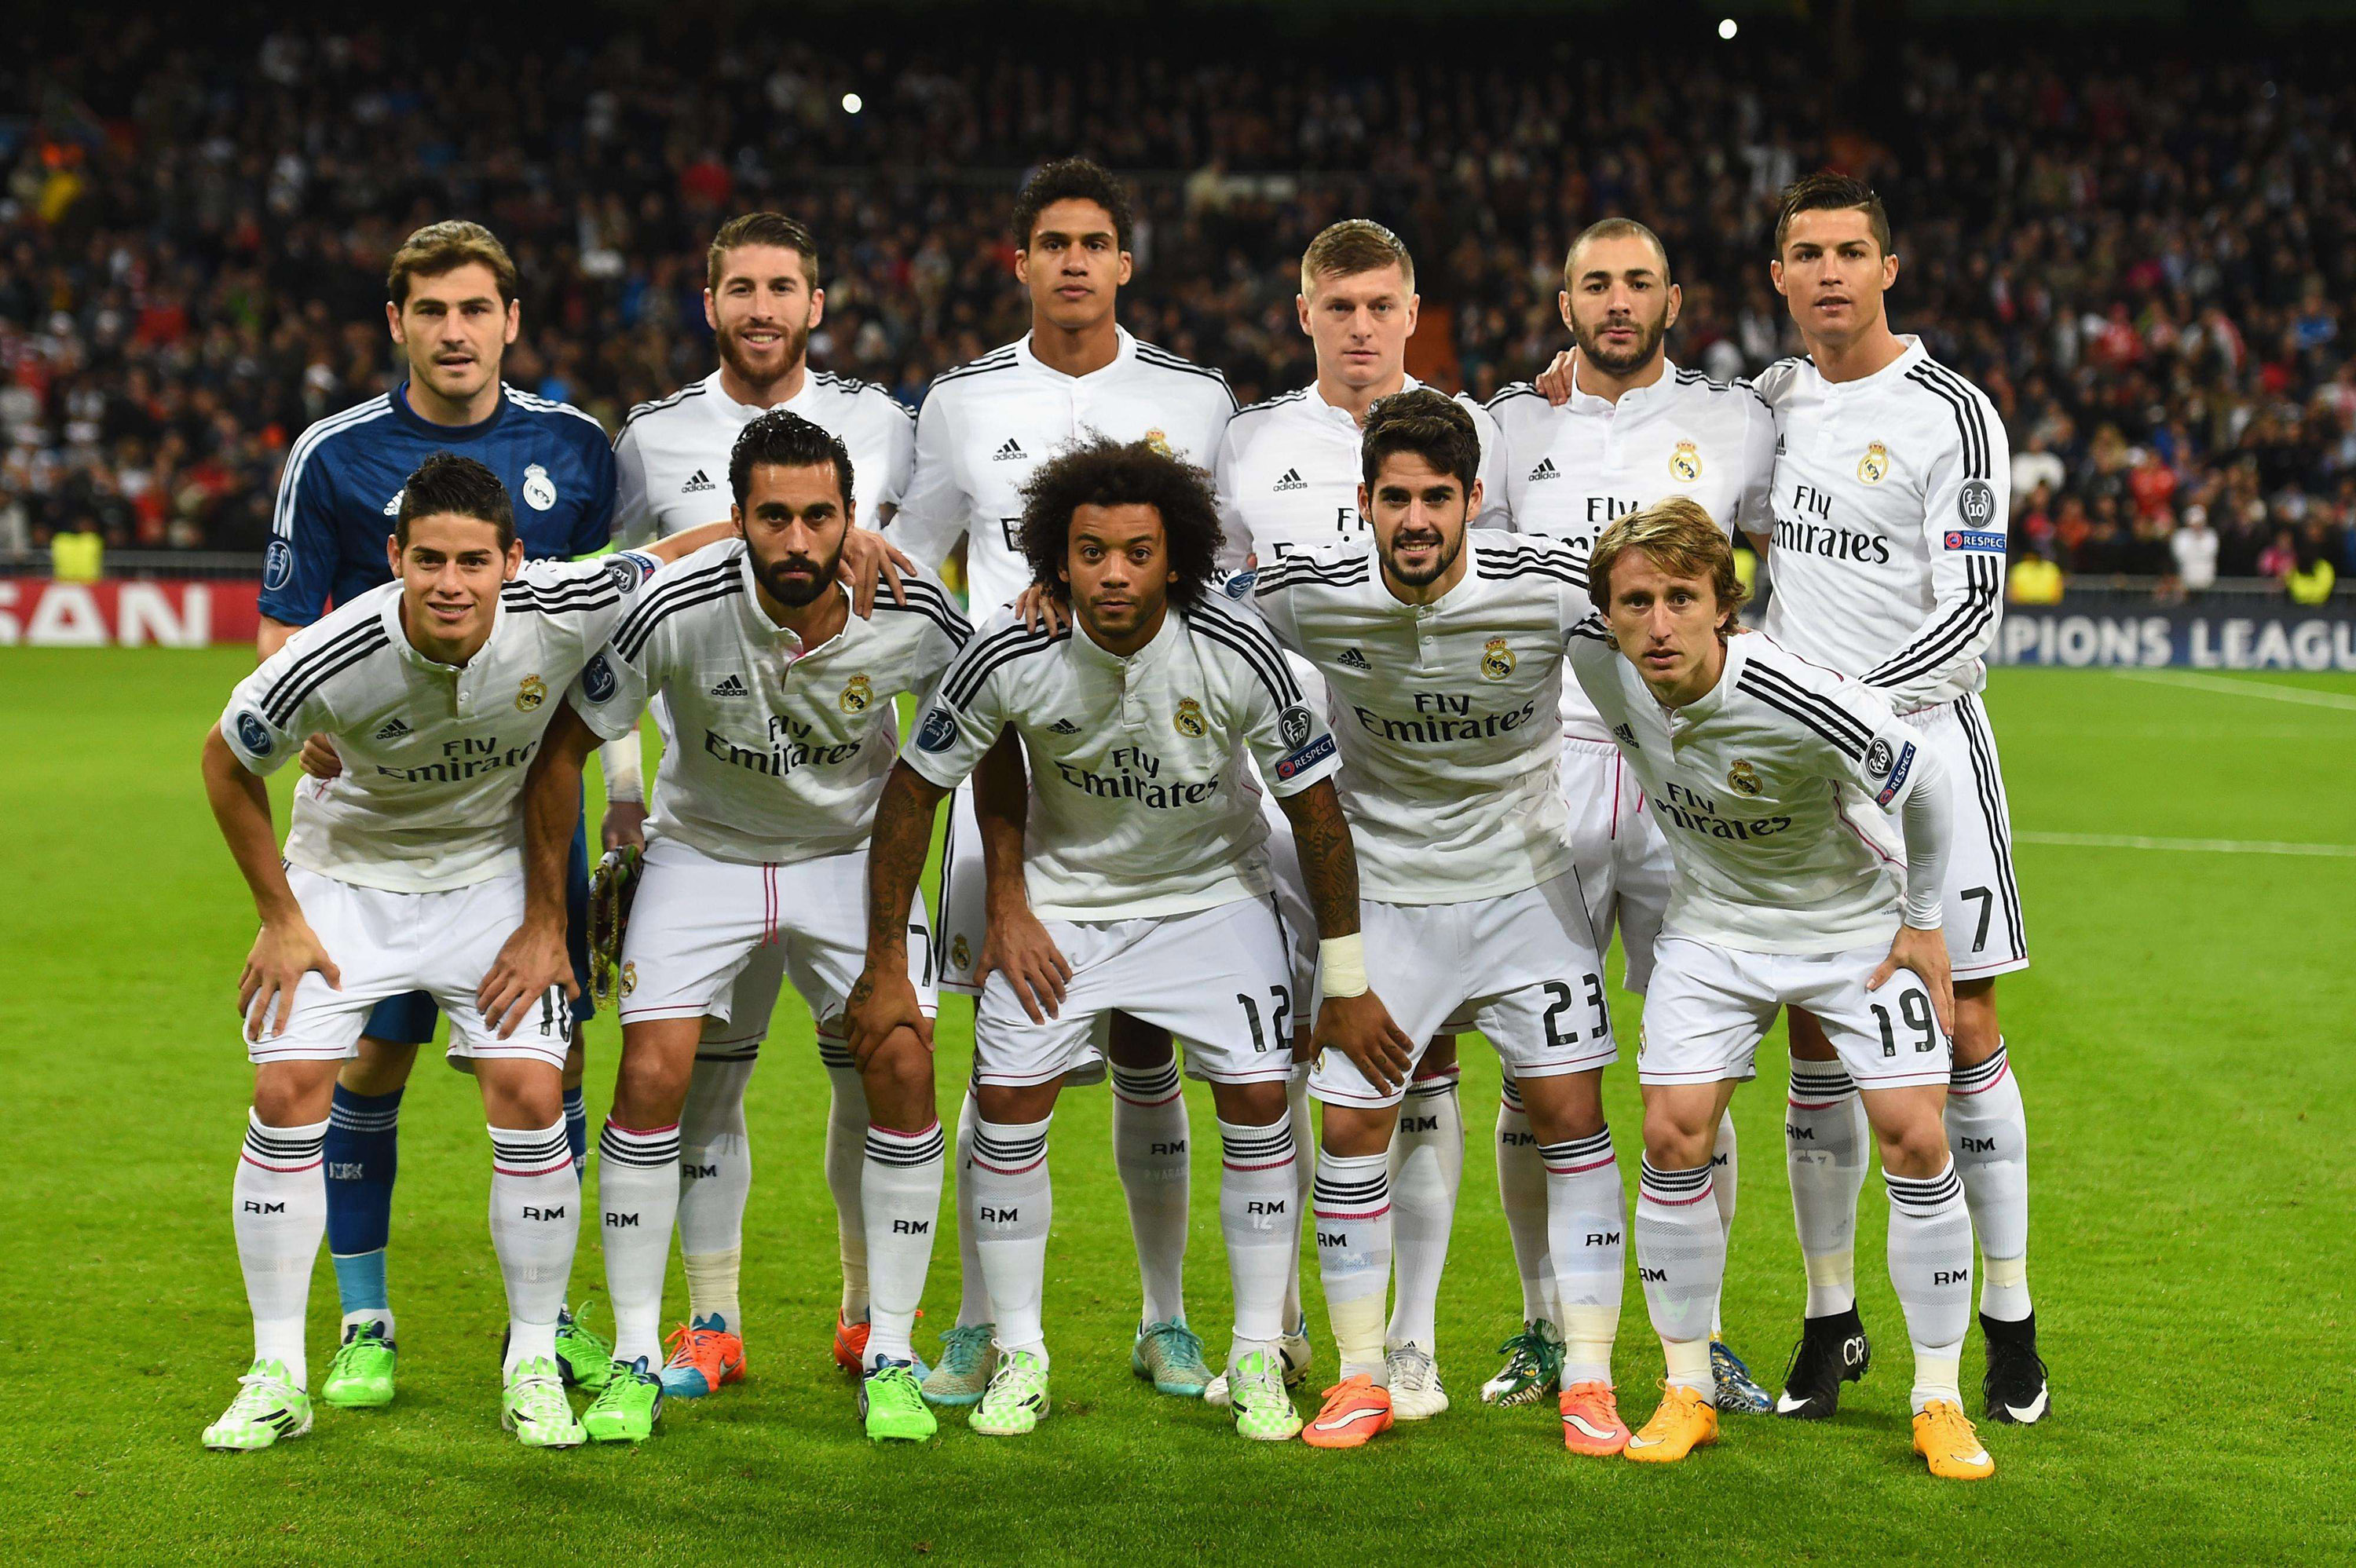 Real Madrid Team Wallpaper